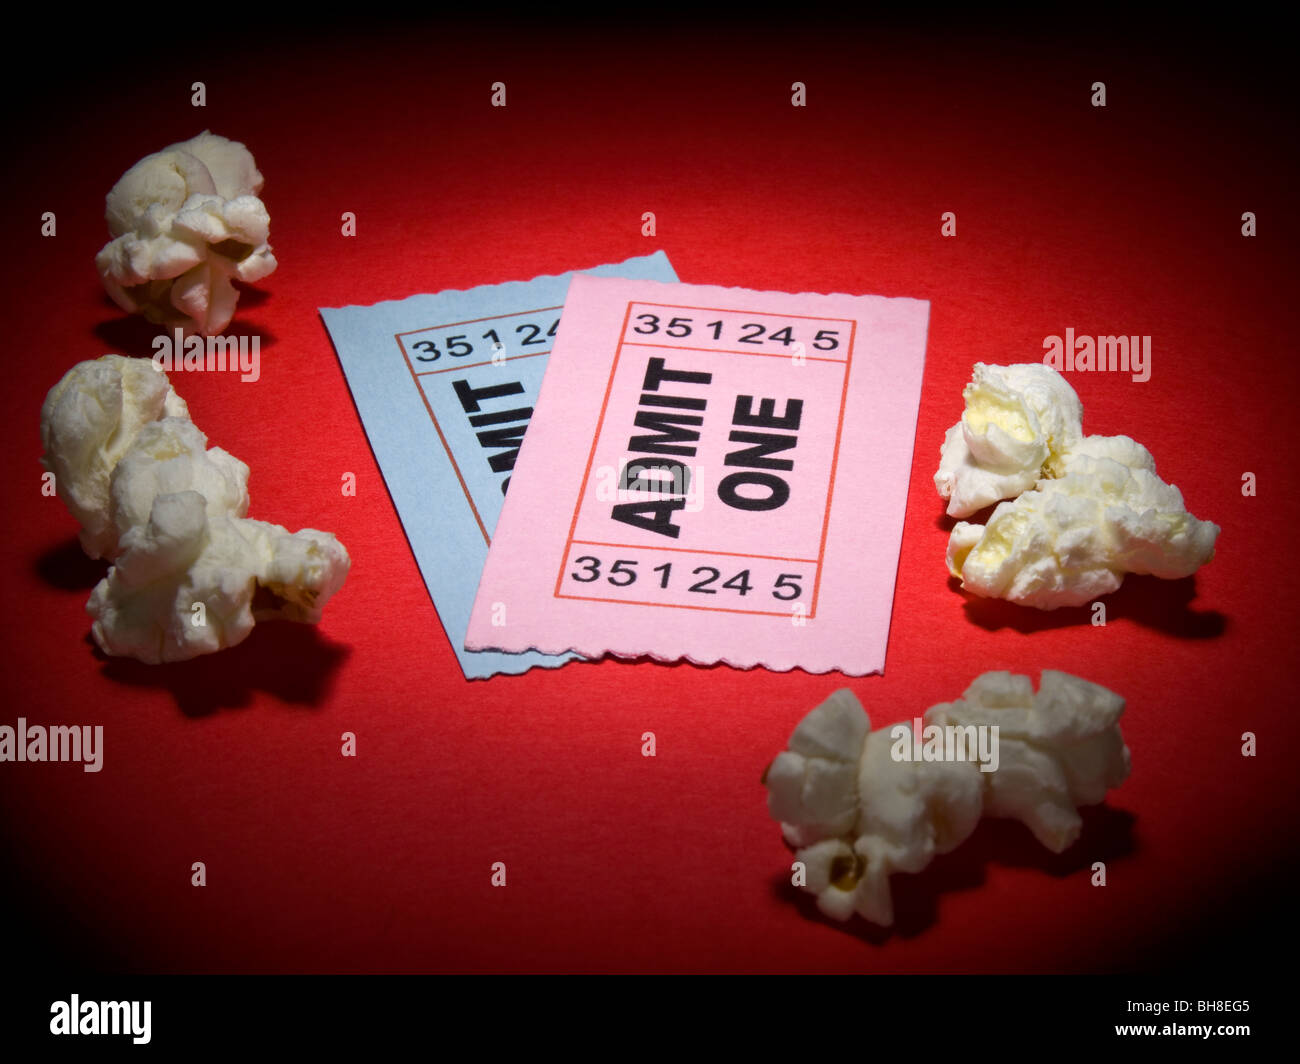 Close up shot of two generic admission tickets and some popcorns arround. - Stock Image